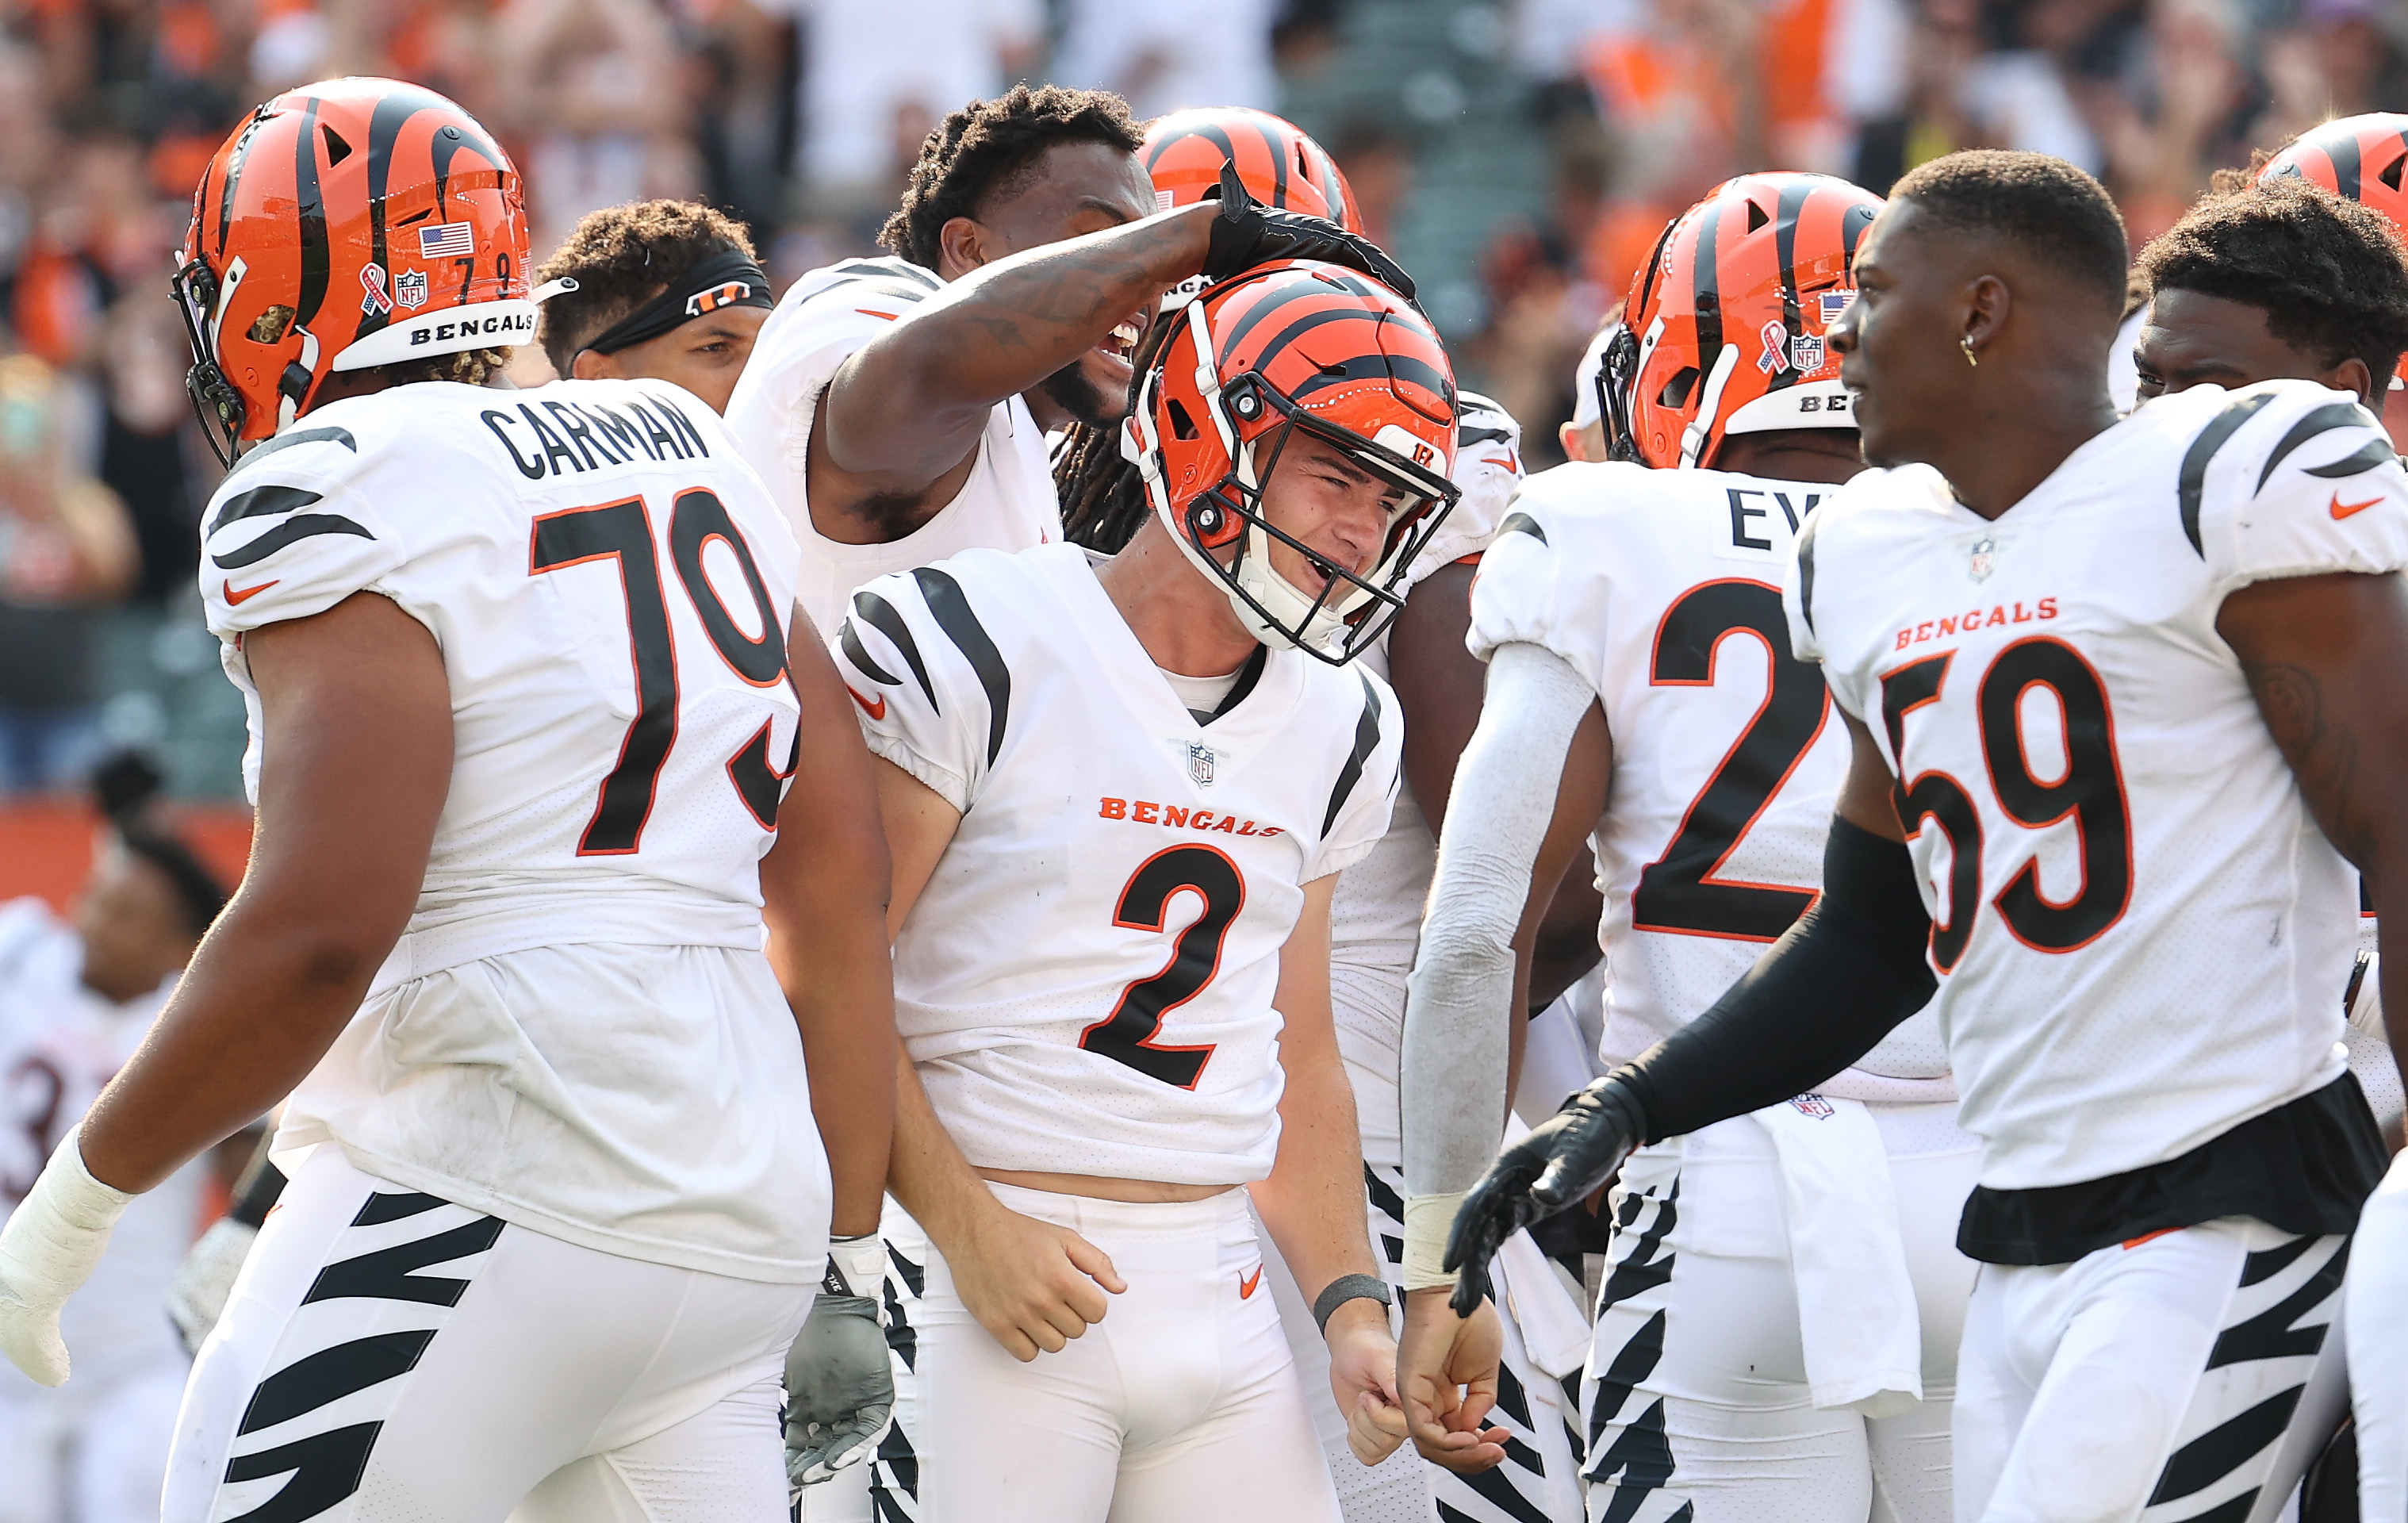 Evan McPherson #2 of the Cincinnati Bengals celebrates with teammates after kicking a field goal to beat the Minnesota Vikings 27-24 in overtime at Paul Brown Stadium on September 12, 2021 in Cincinnati, Ohio.